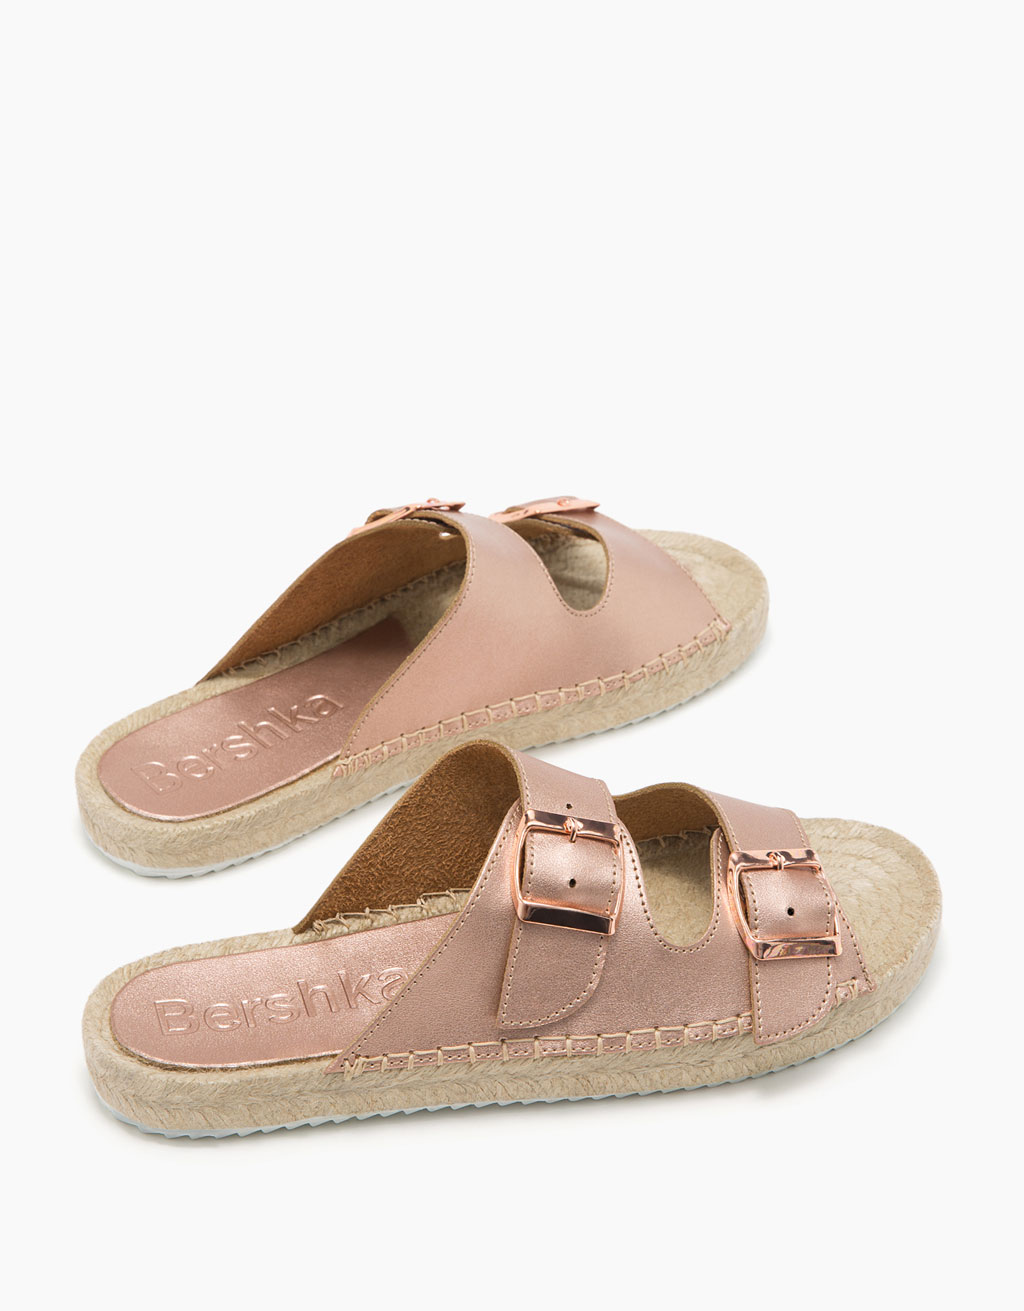 Metallic jute flat sandals with buckles